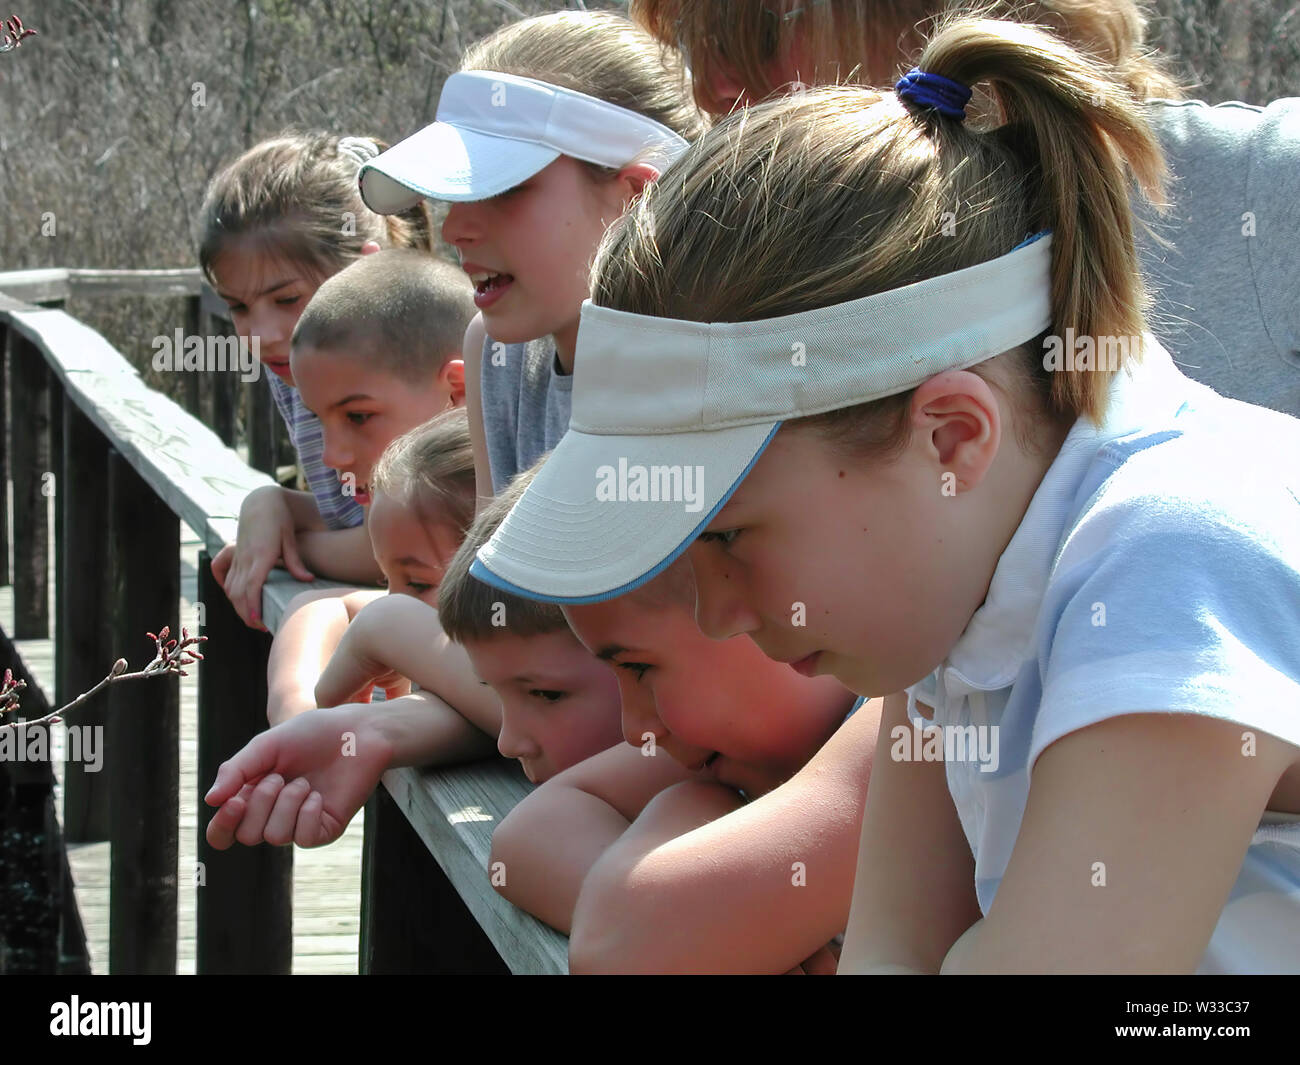 Rocky Hill, CT USA. Apr 2016. A focused group of kids looking at wildlife in action at the park. - Stock Image